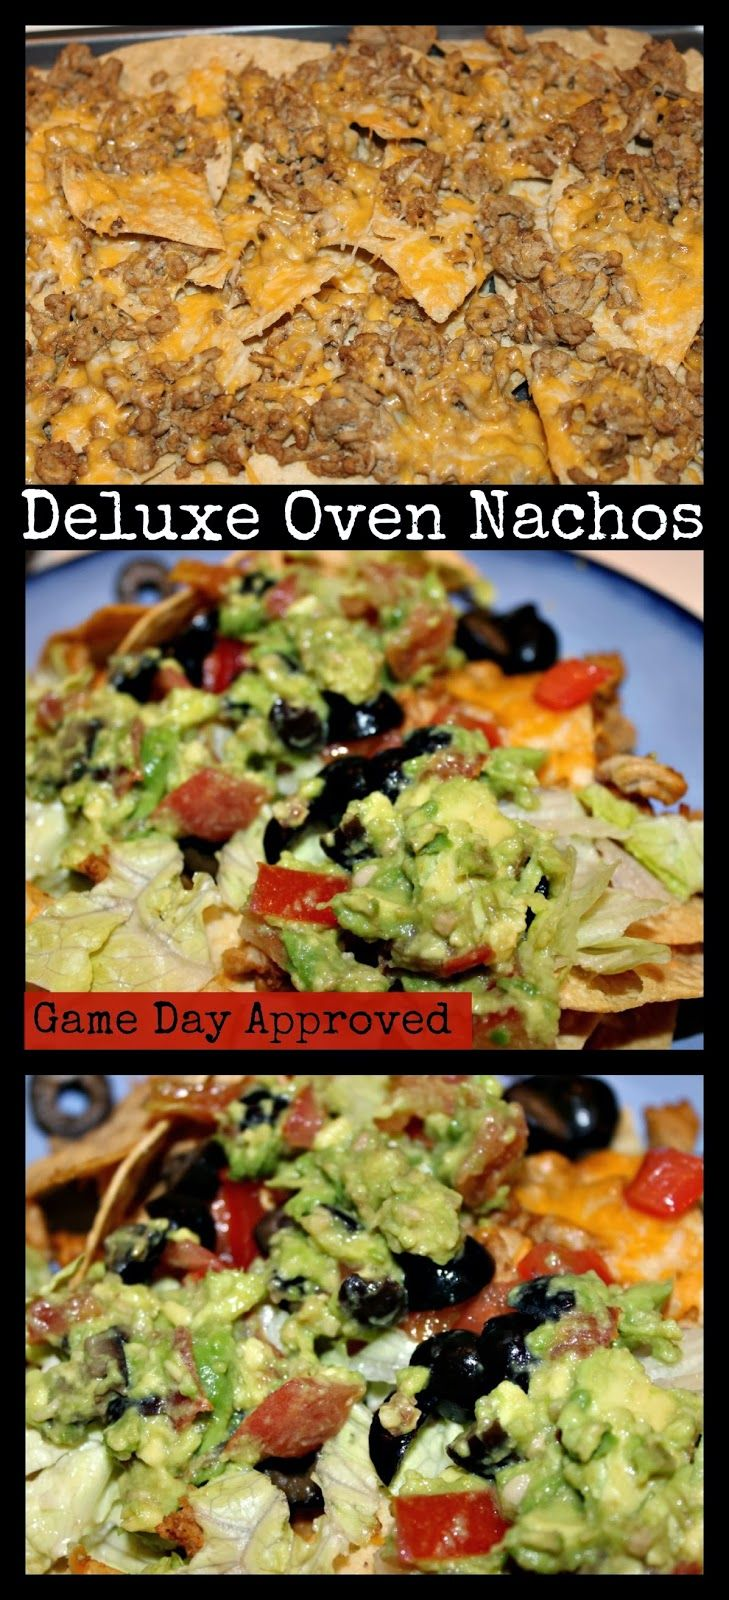 29 best blog recipes images on pinterest best food recipes in game day deluxe oven nachos homemade nachos perfect for super bowl party or nacho bar simple easy nachos recipehomemade nachosnacho recipesparty food forumfinder Gallery